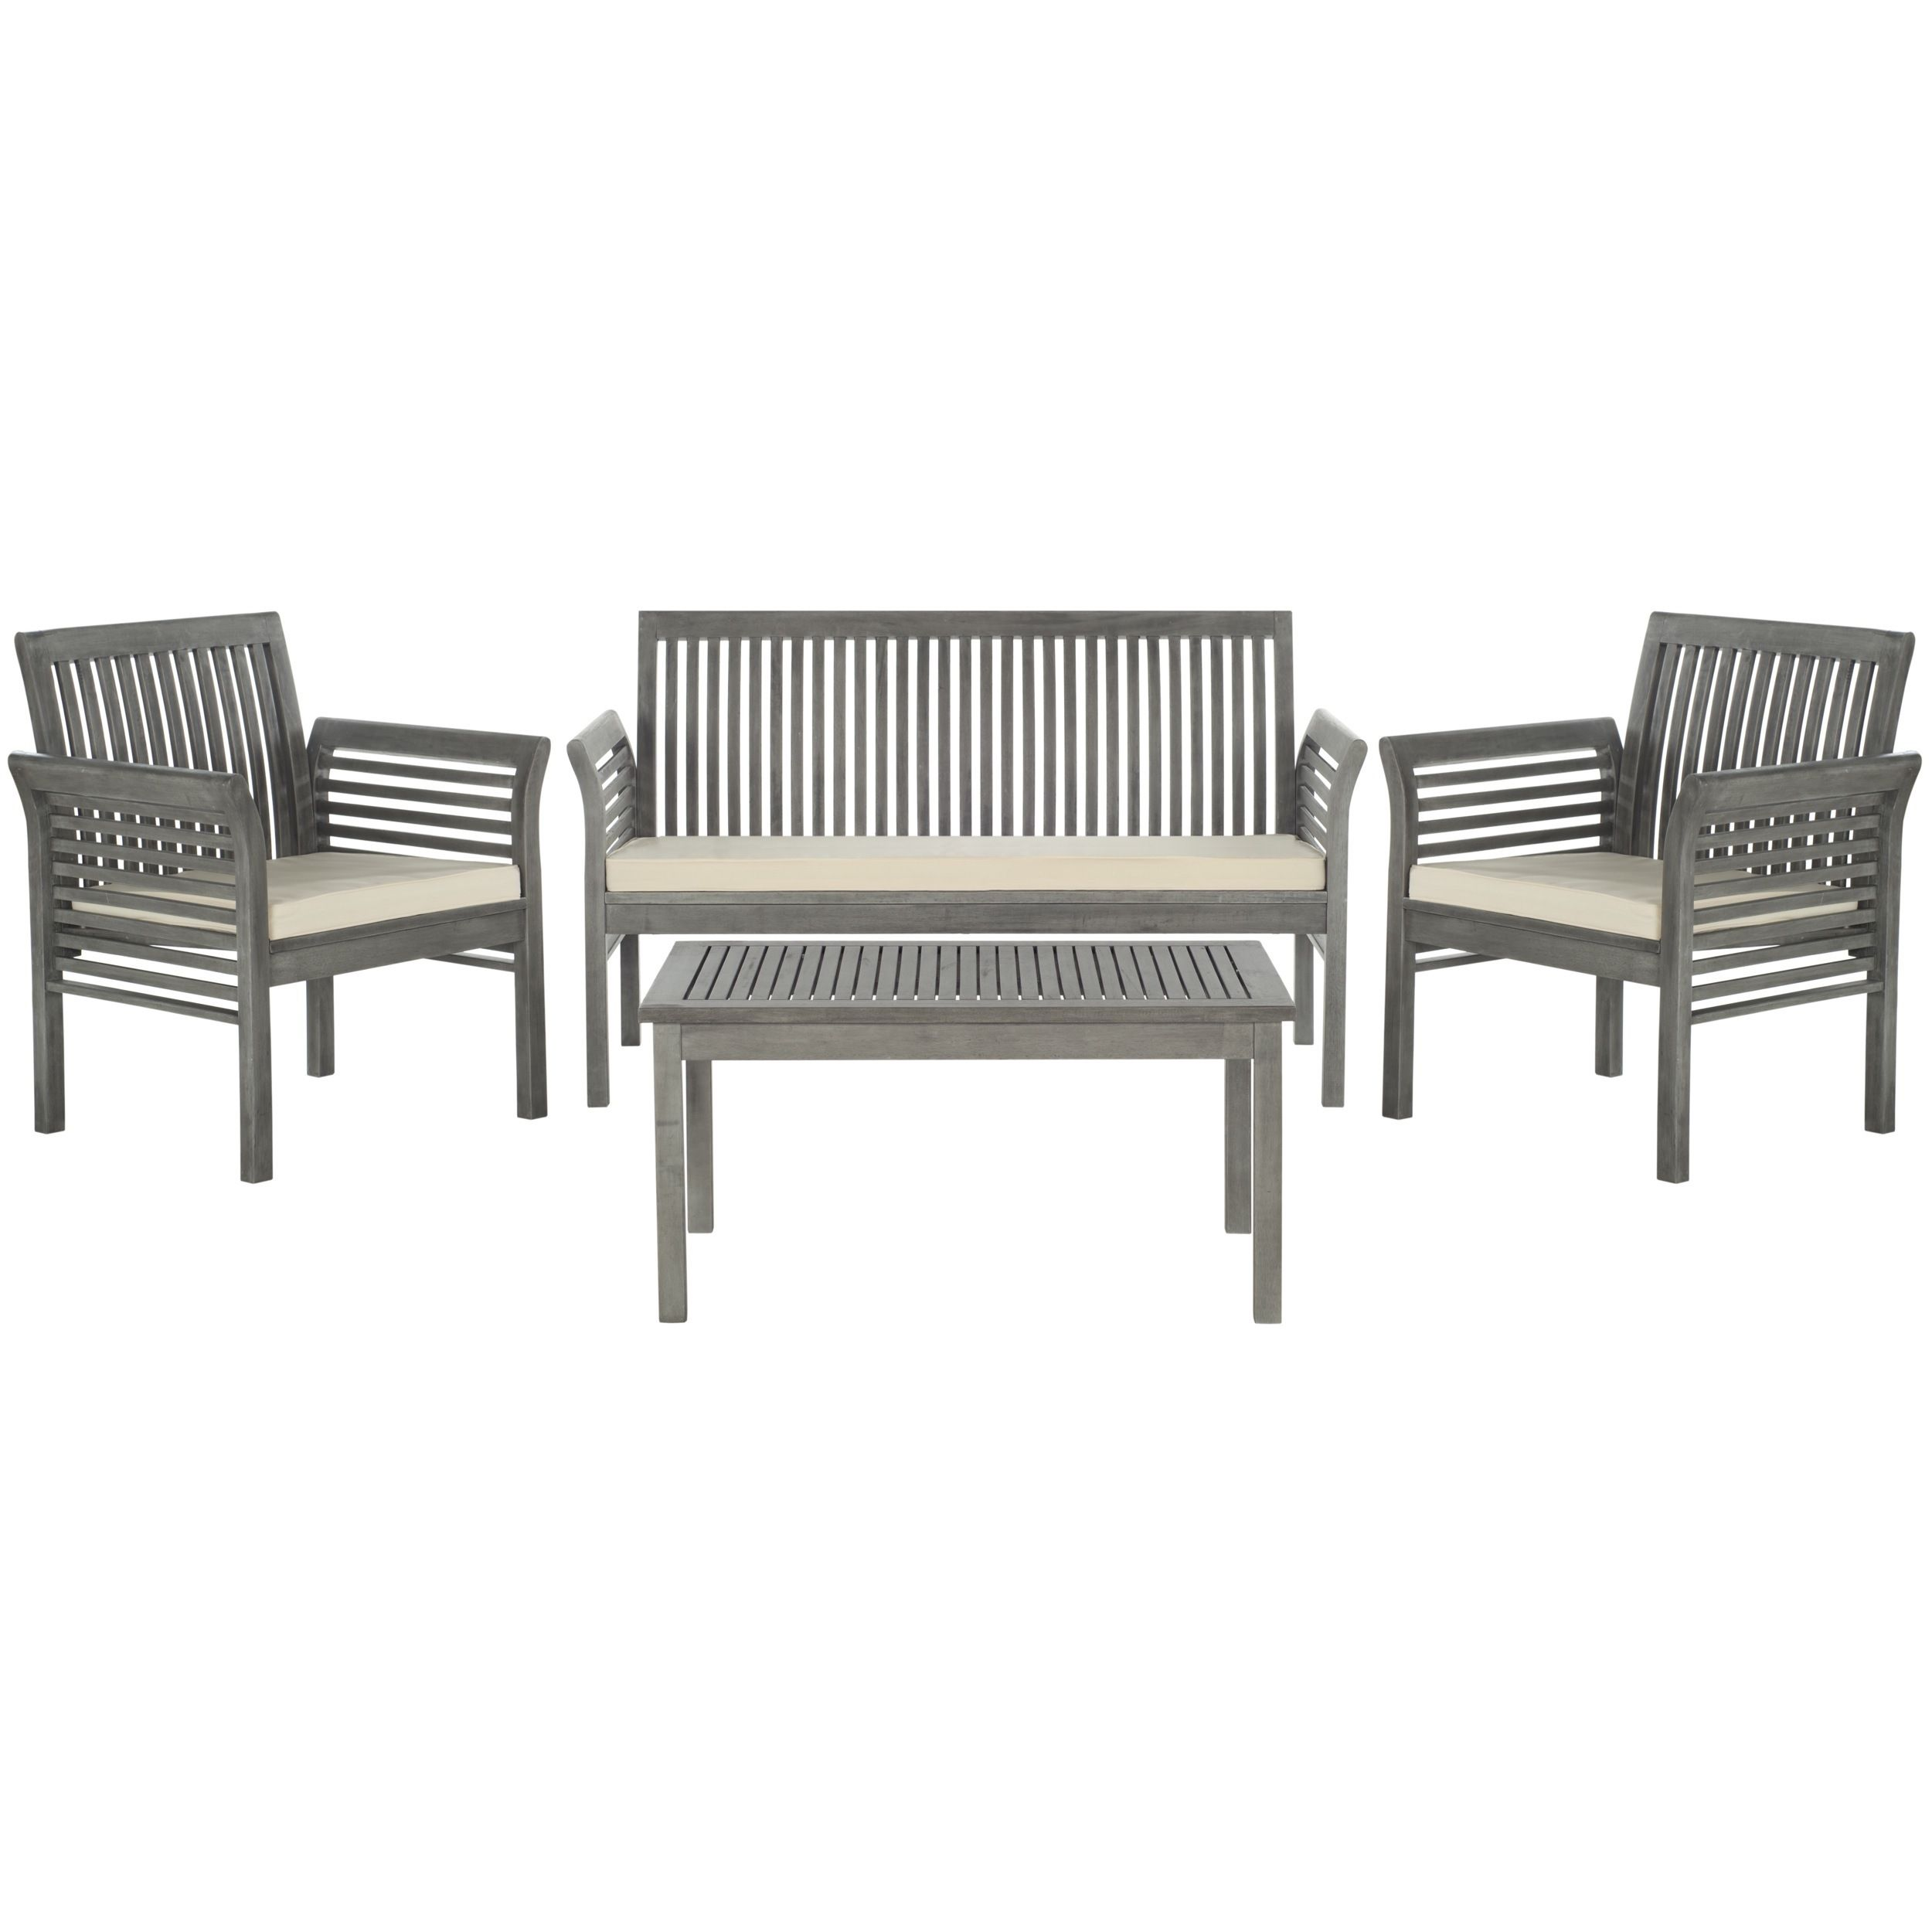 Safavieh Carson Grey Wash Acacia Wood 4 Piece Outdoor Furniture Set |  Overstock.com